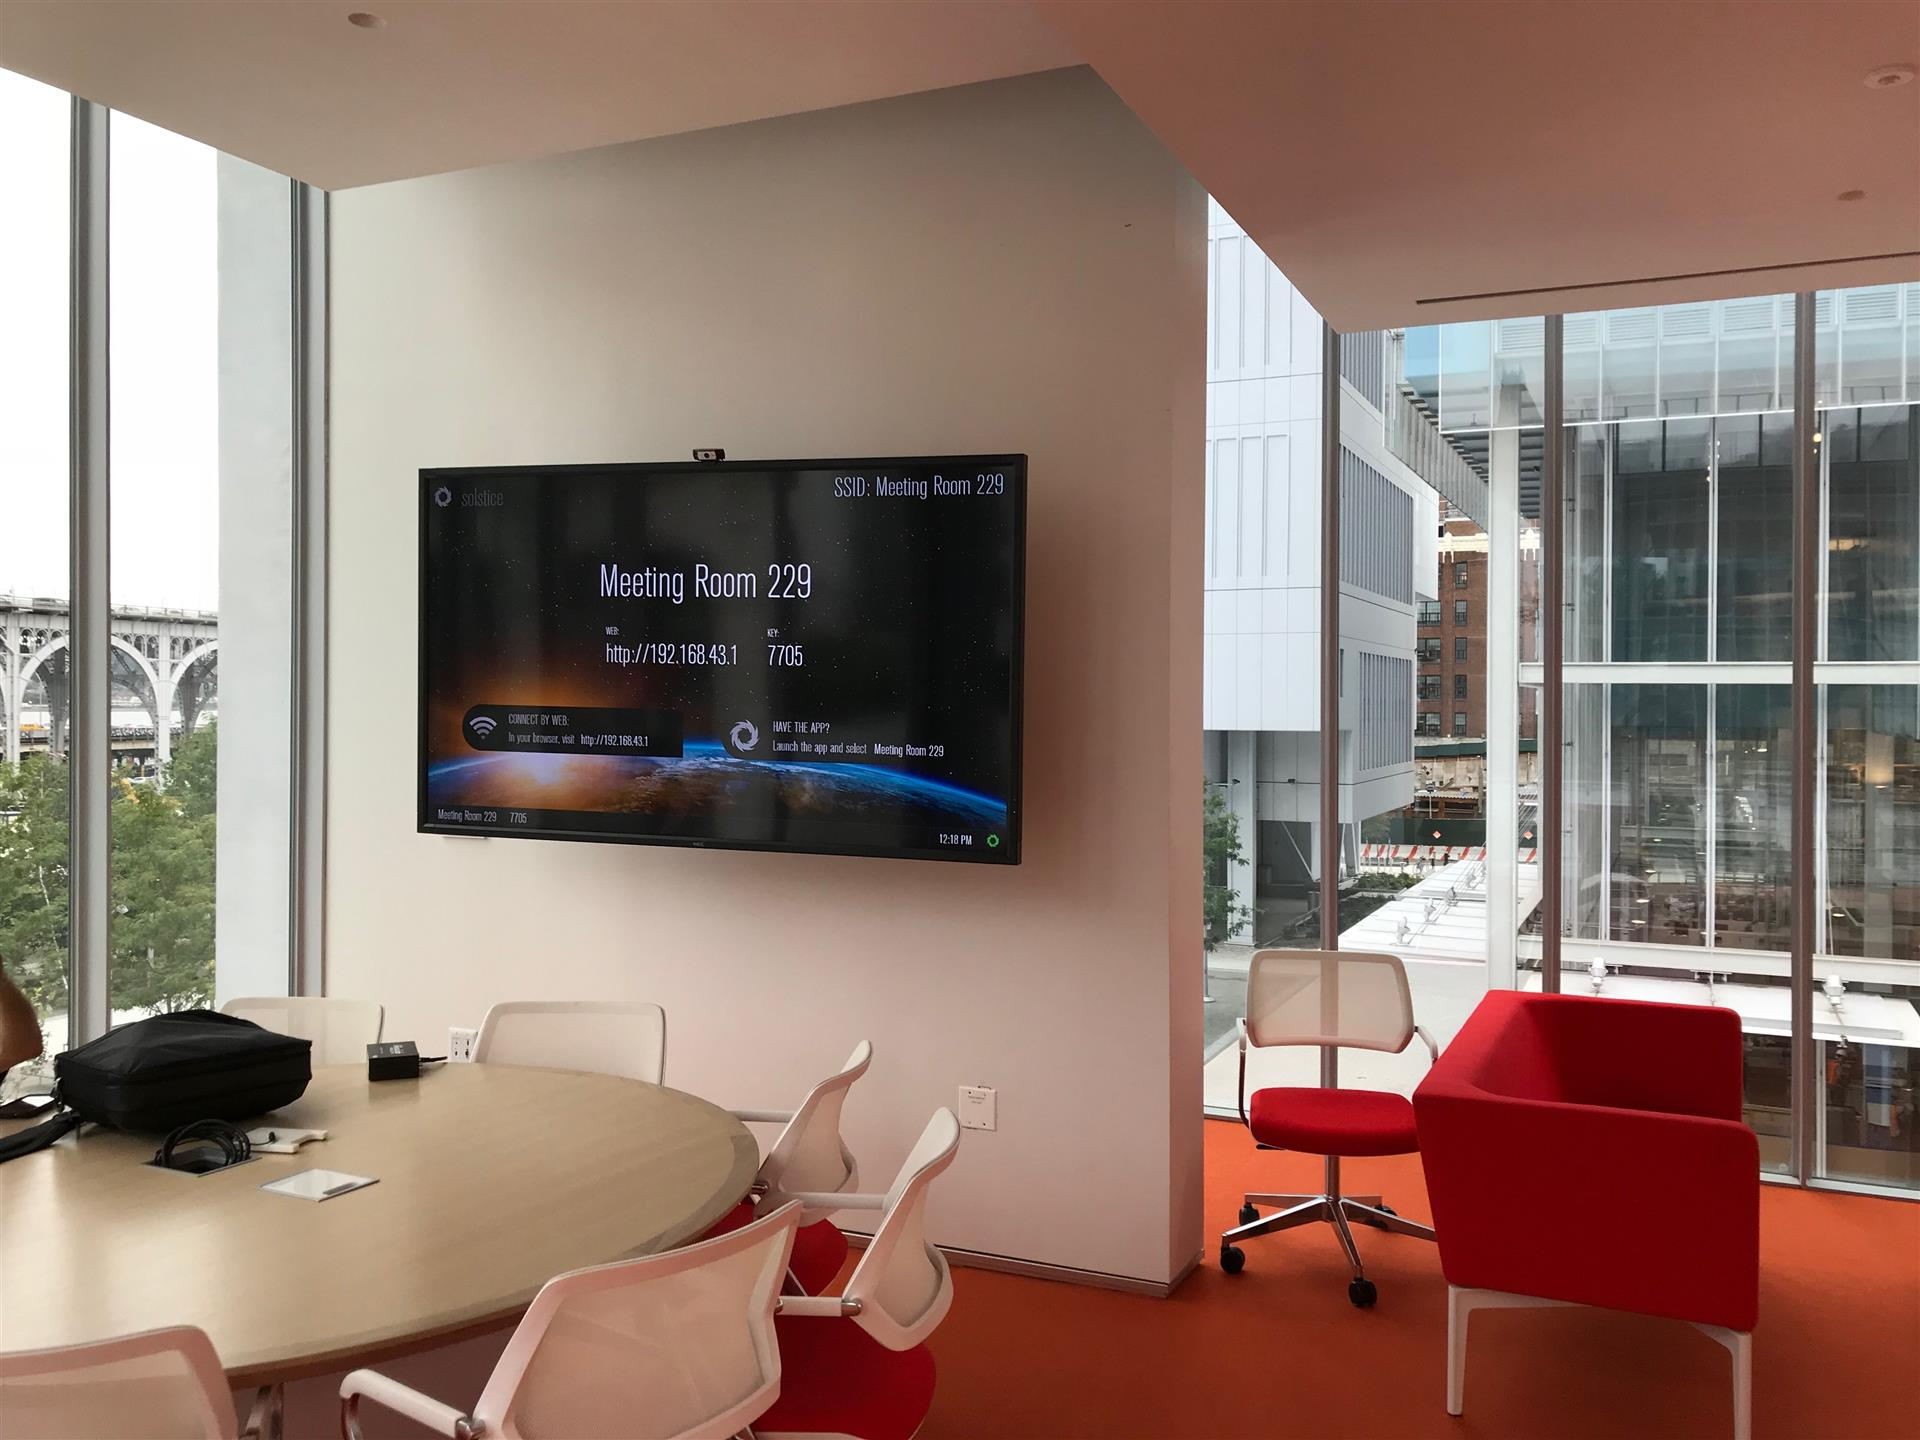 break room with a television on the wall and tables and chairs